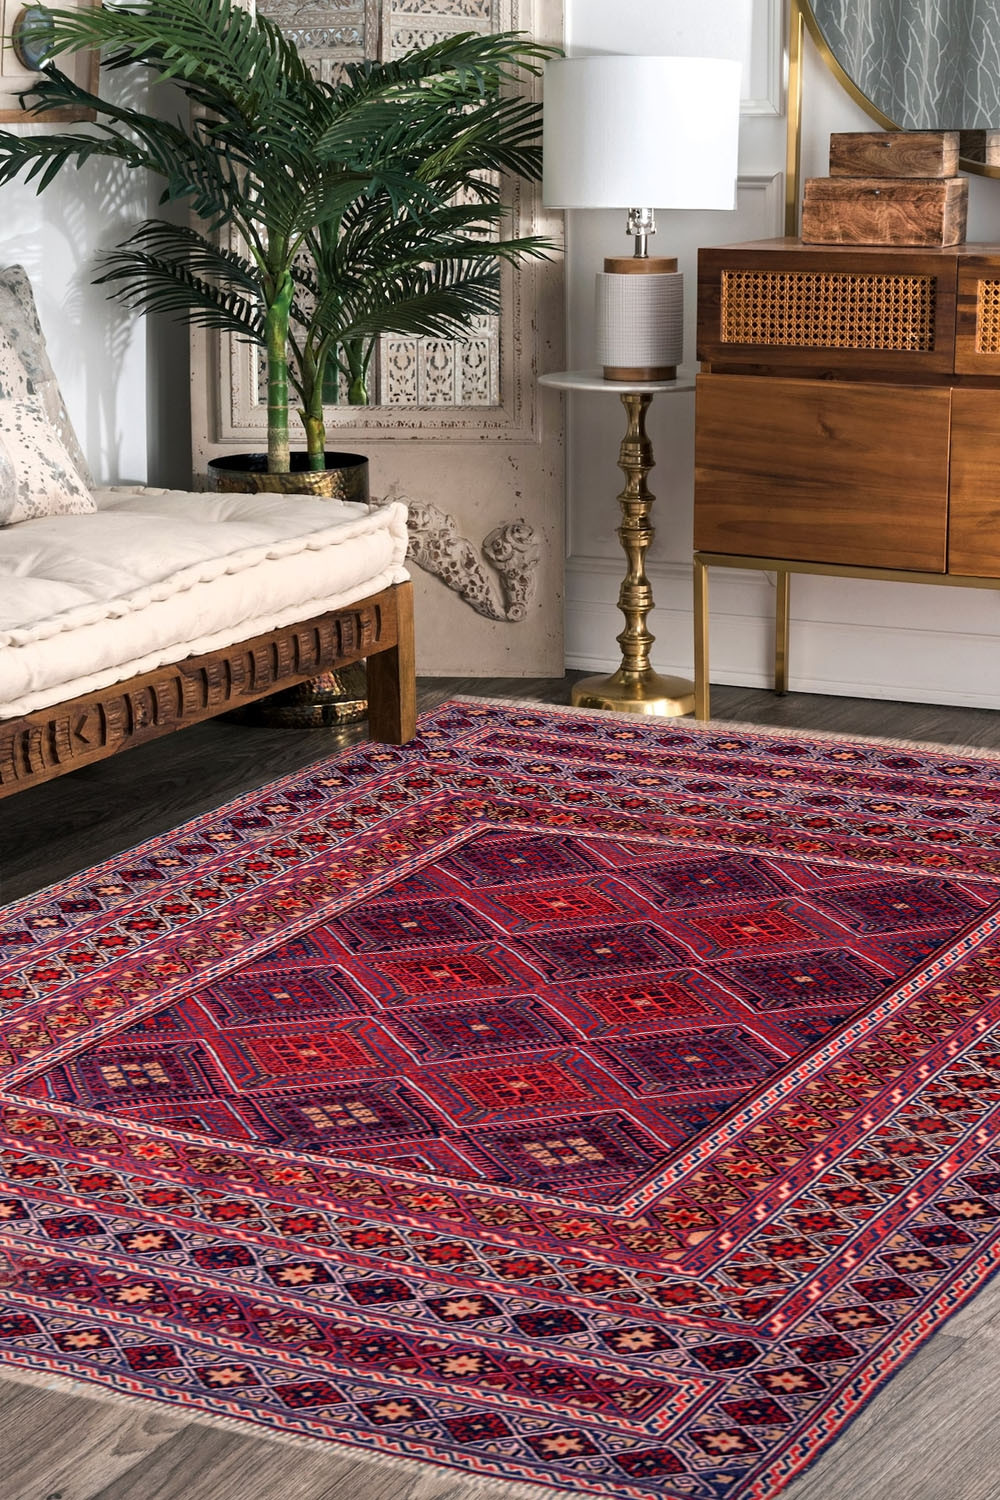 Pure Kilim Handmade Kilim Rugs Online At Cheap Price